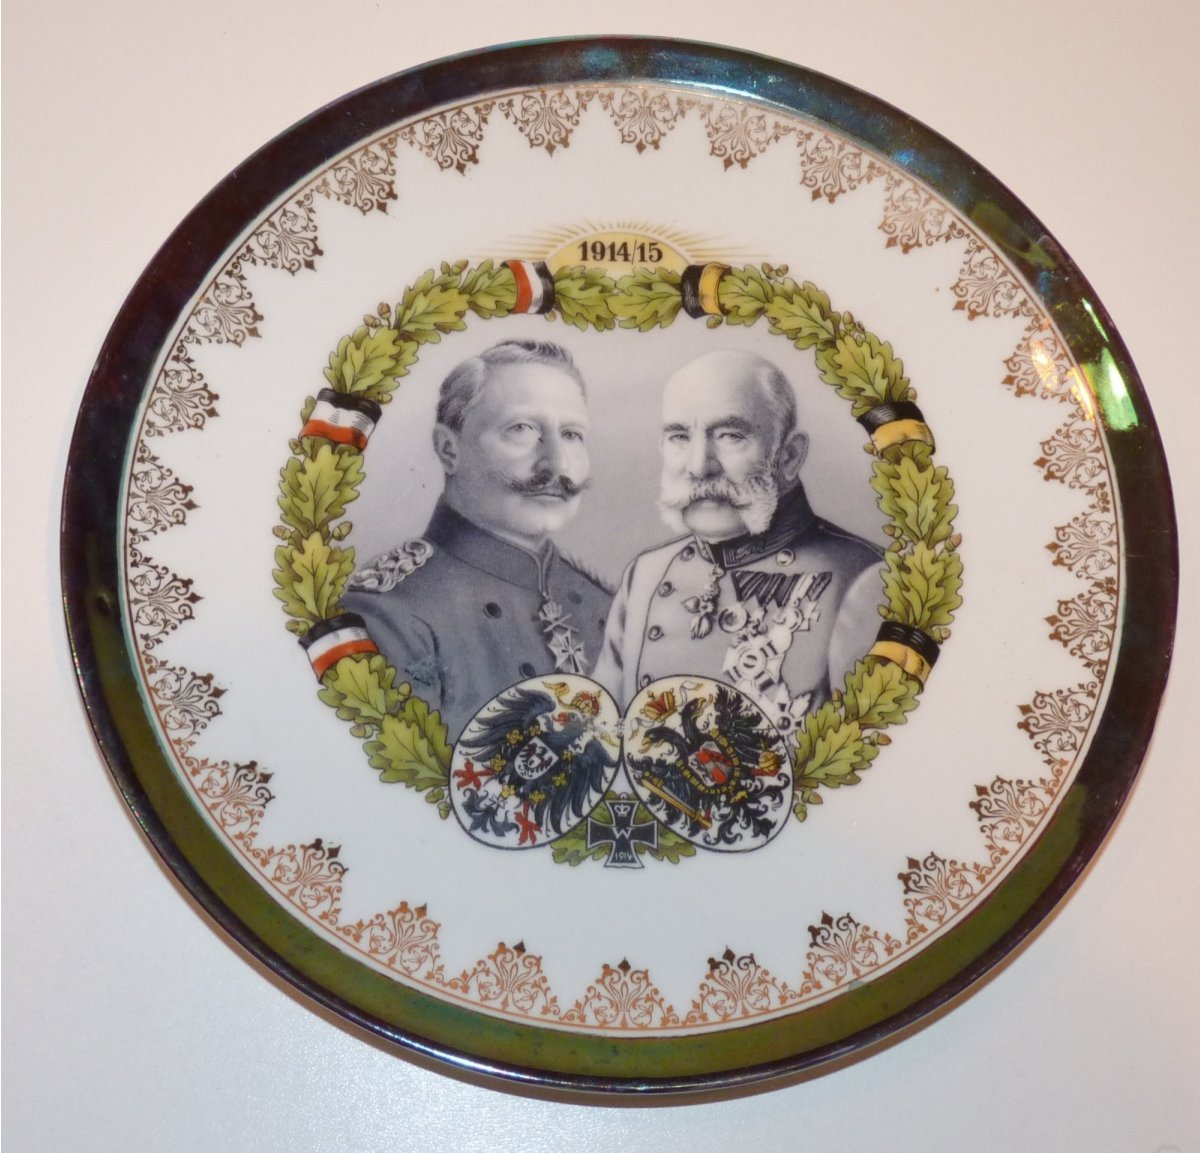 Plate with portraits of Franz Joseph I. and Wilhelm II.